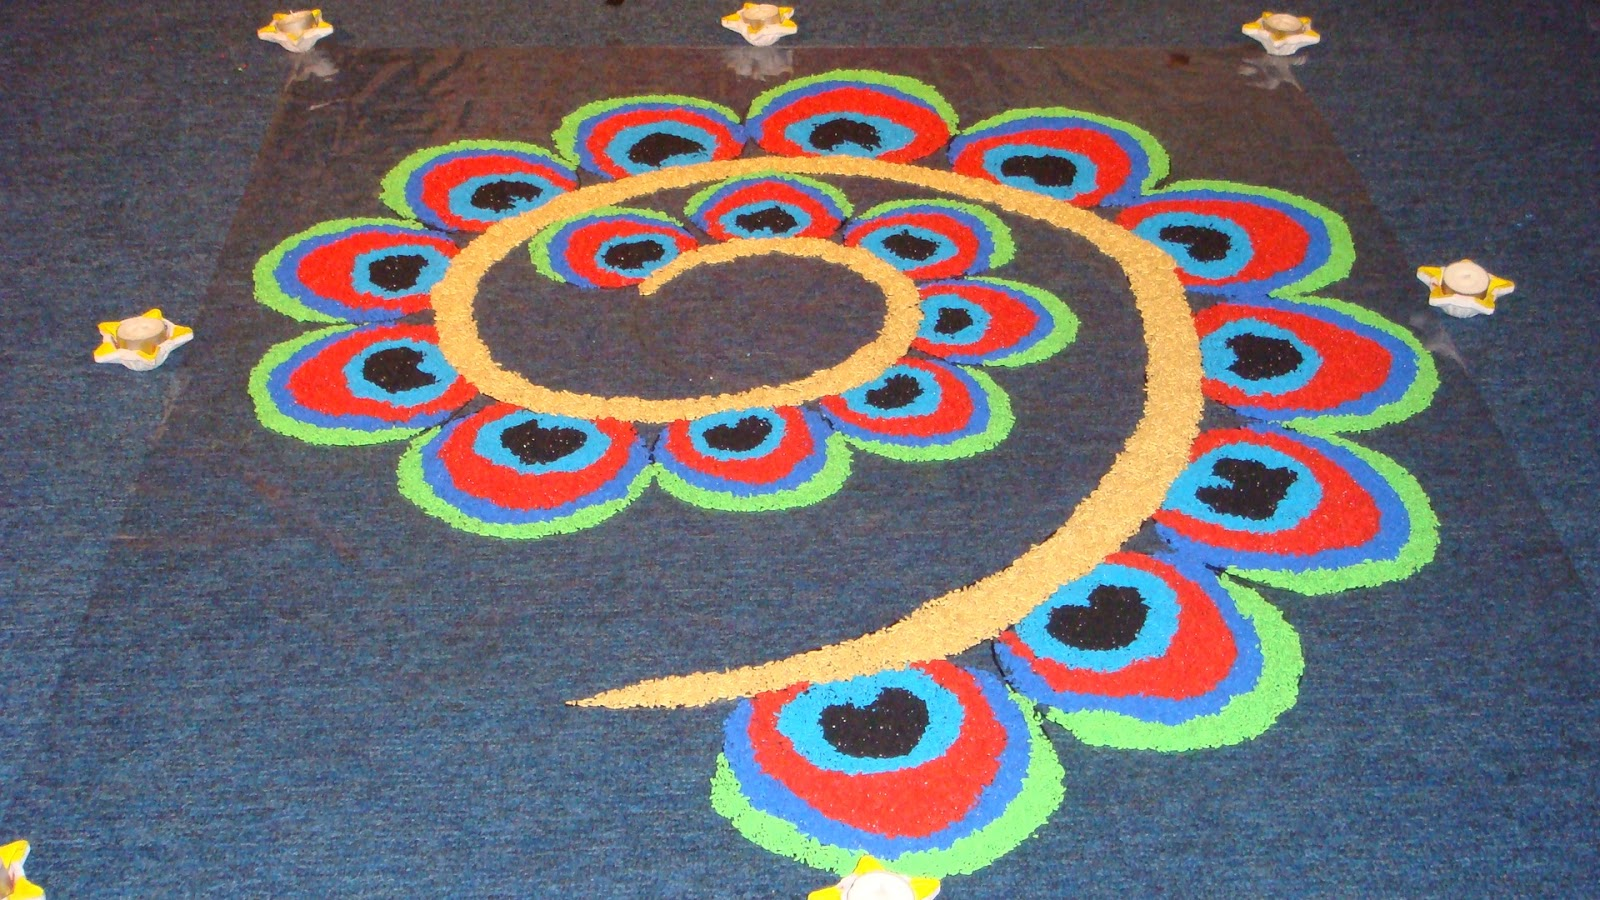 Top Awesome Raksha Bandhan Rangoli Designs wallpapers for free download